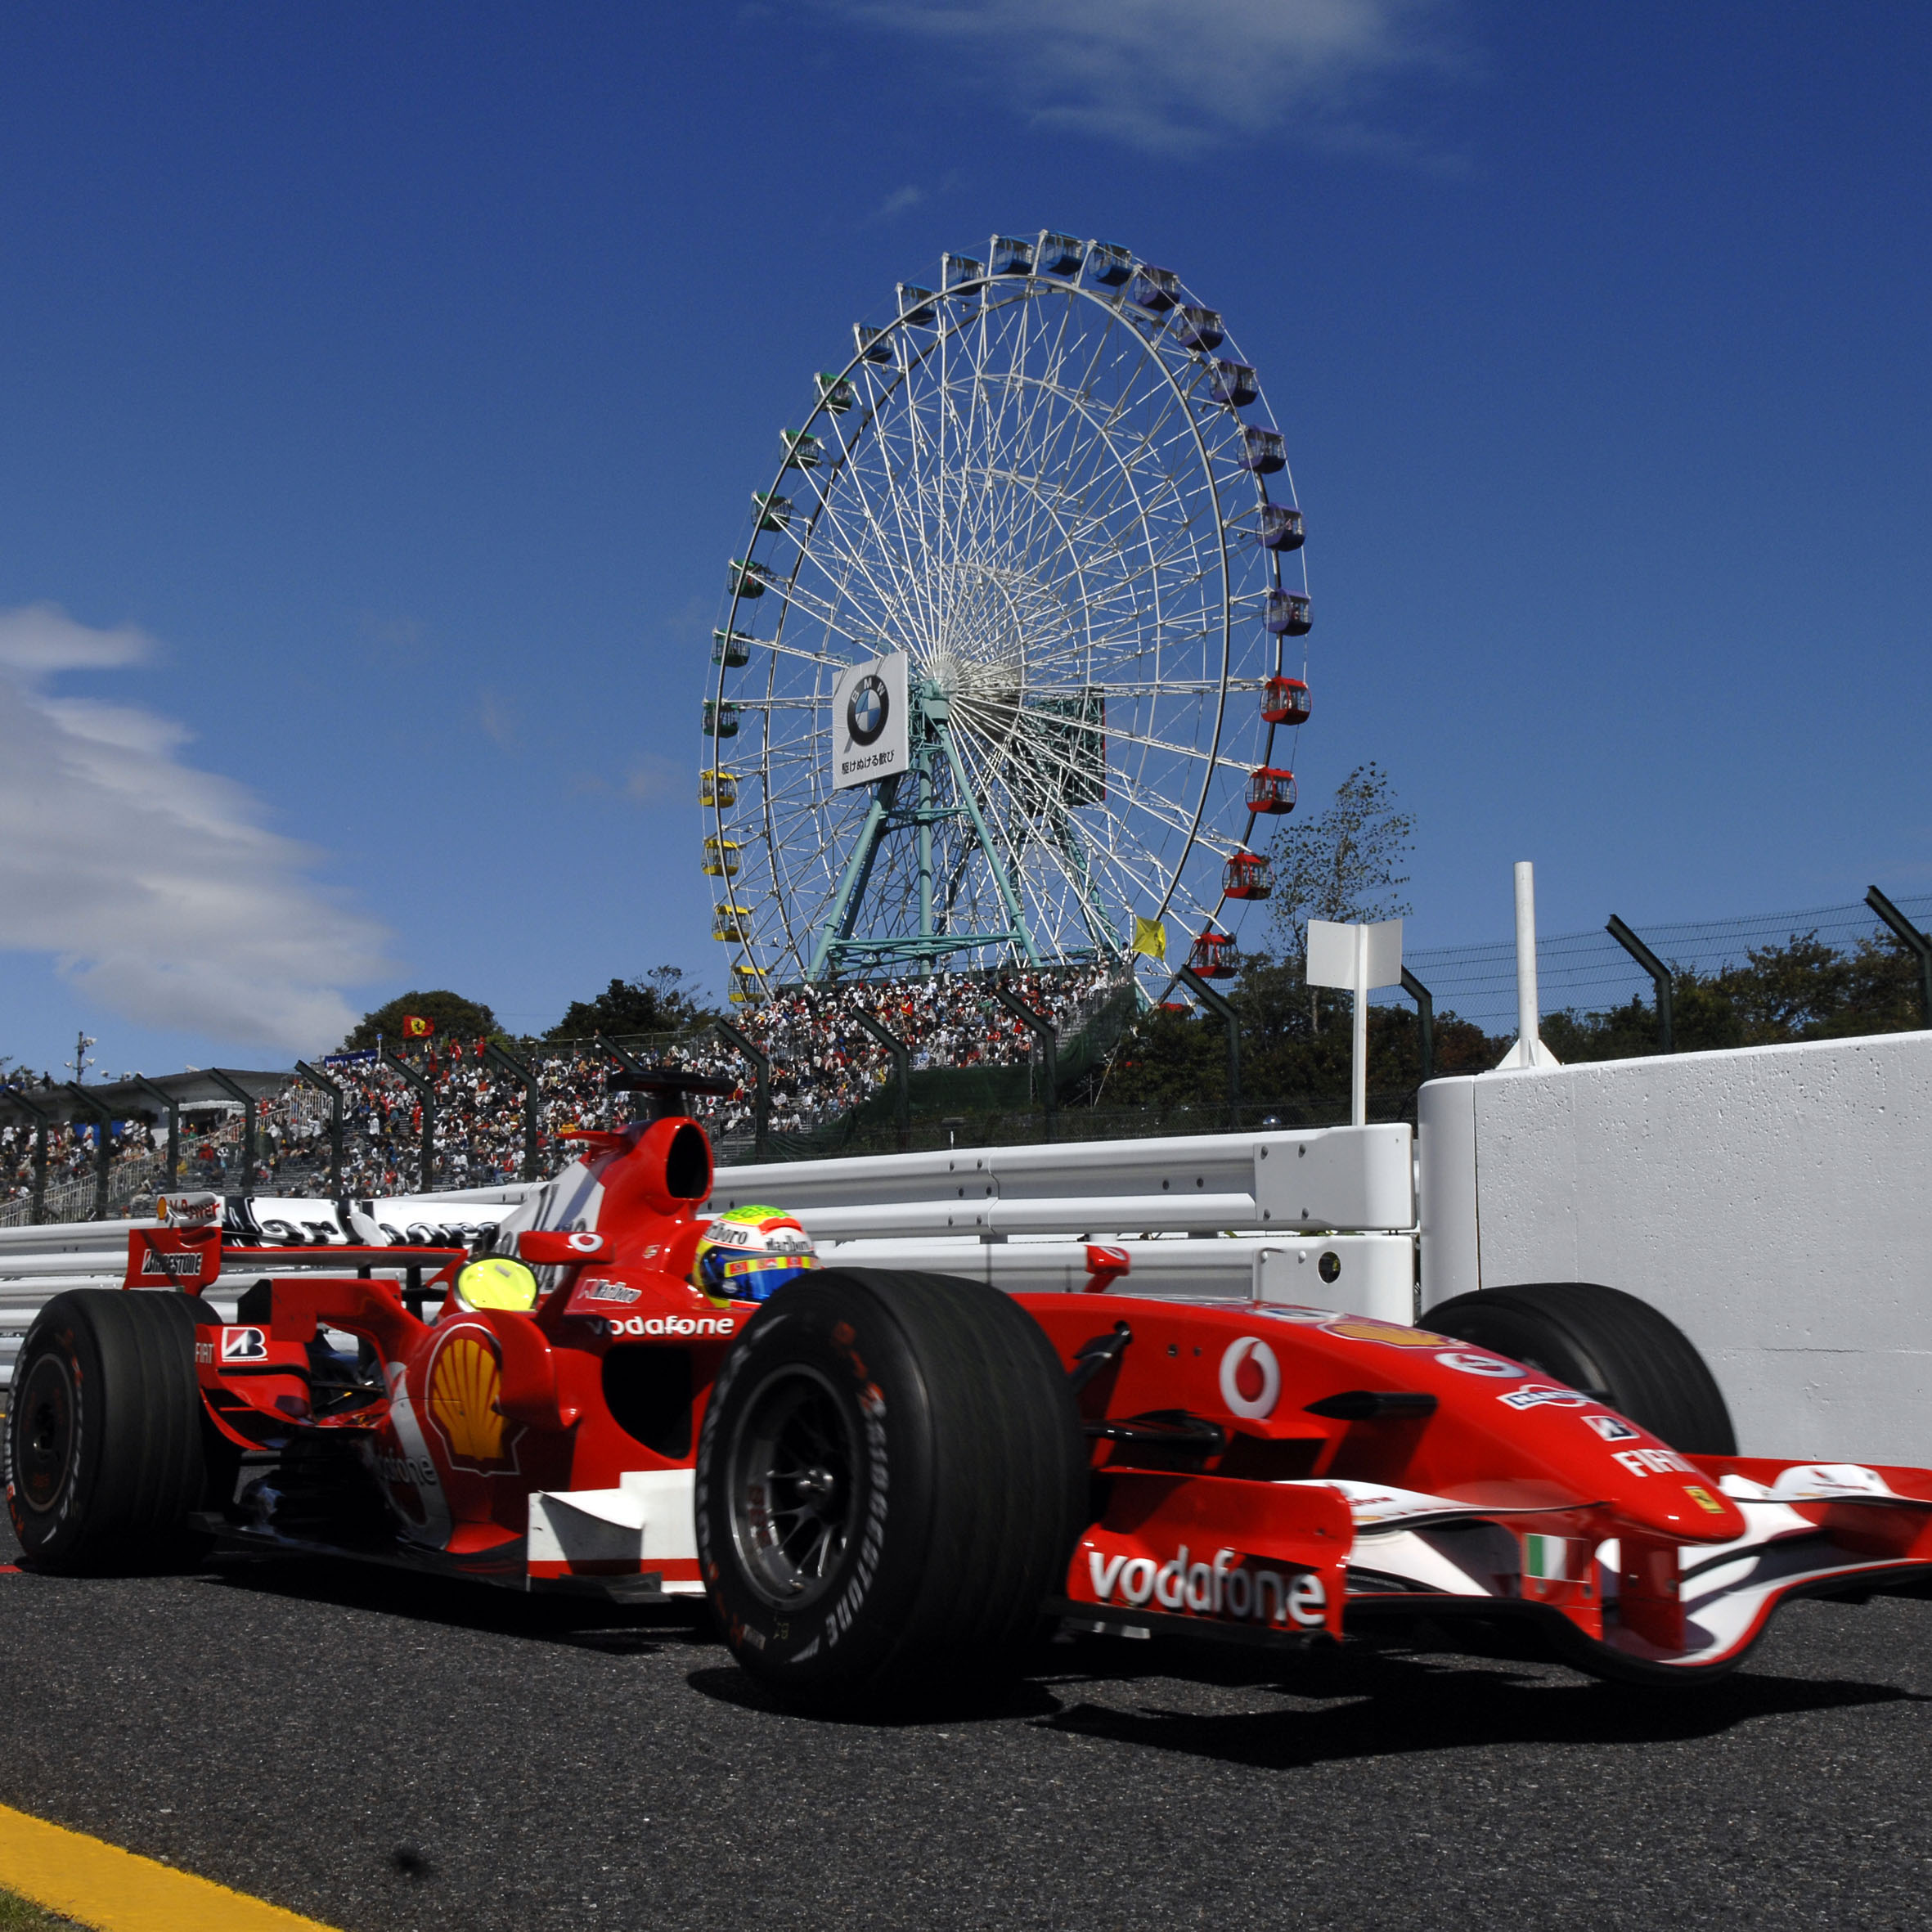 Japanese Grand Prix Tickets and Hospitality